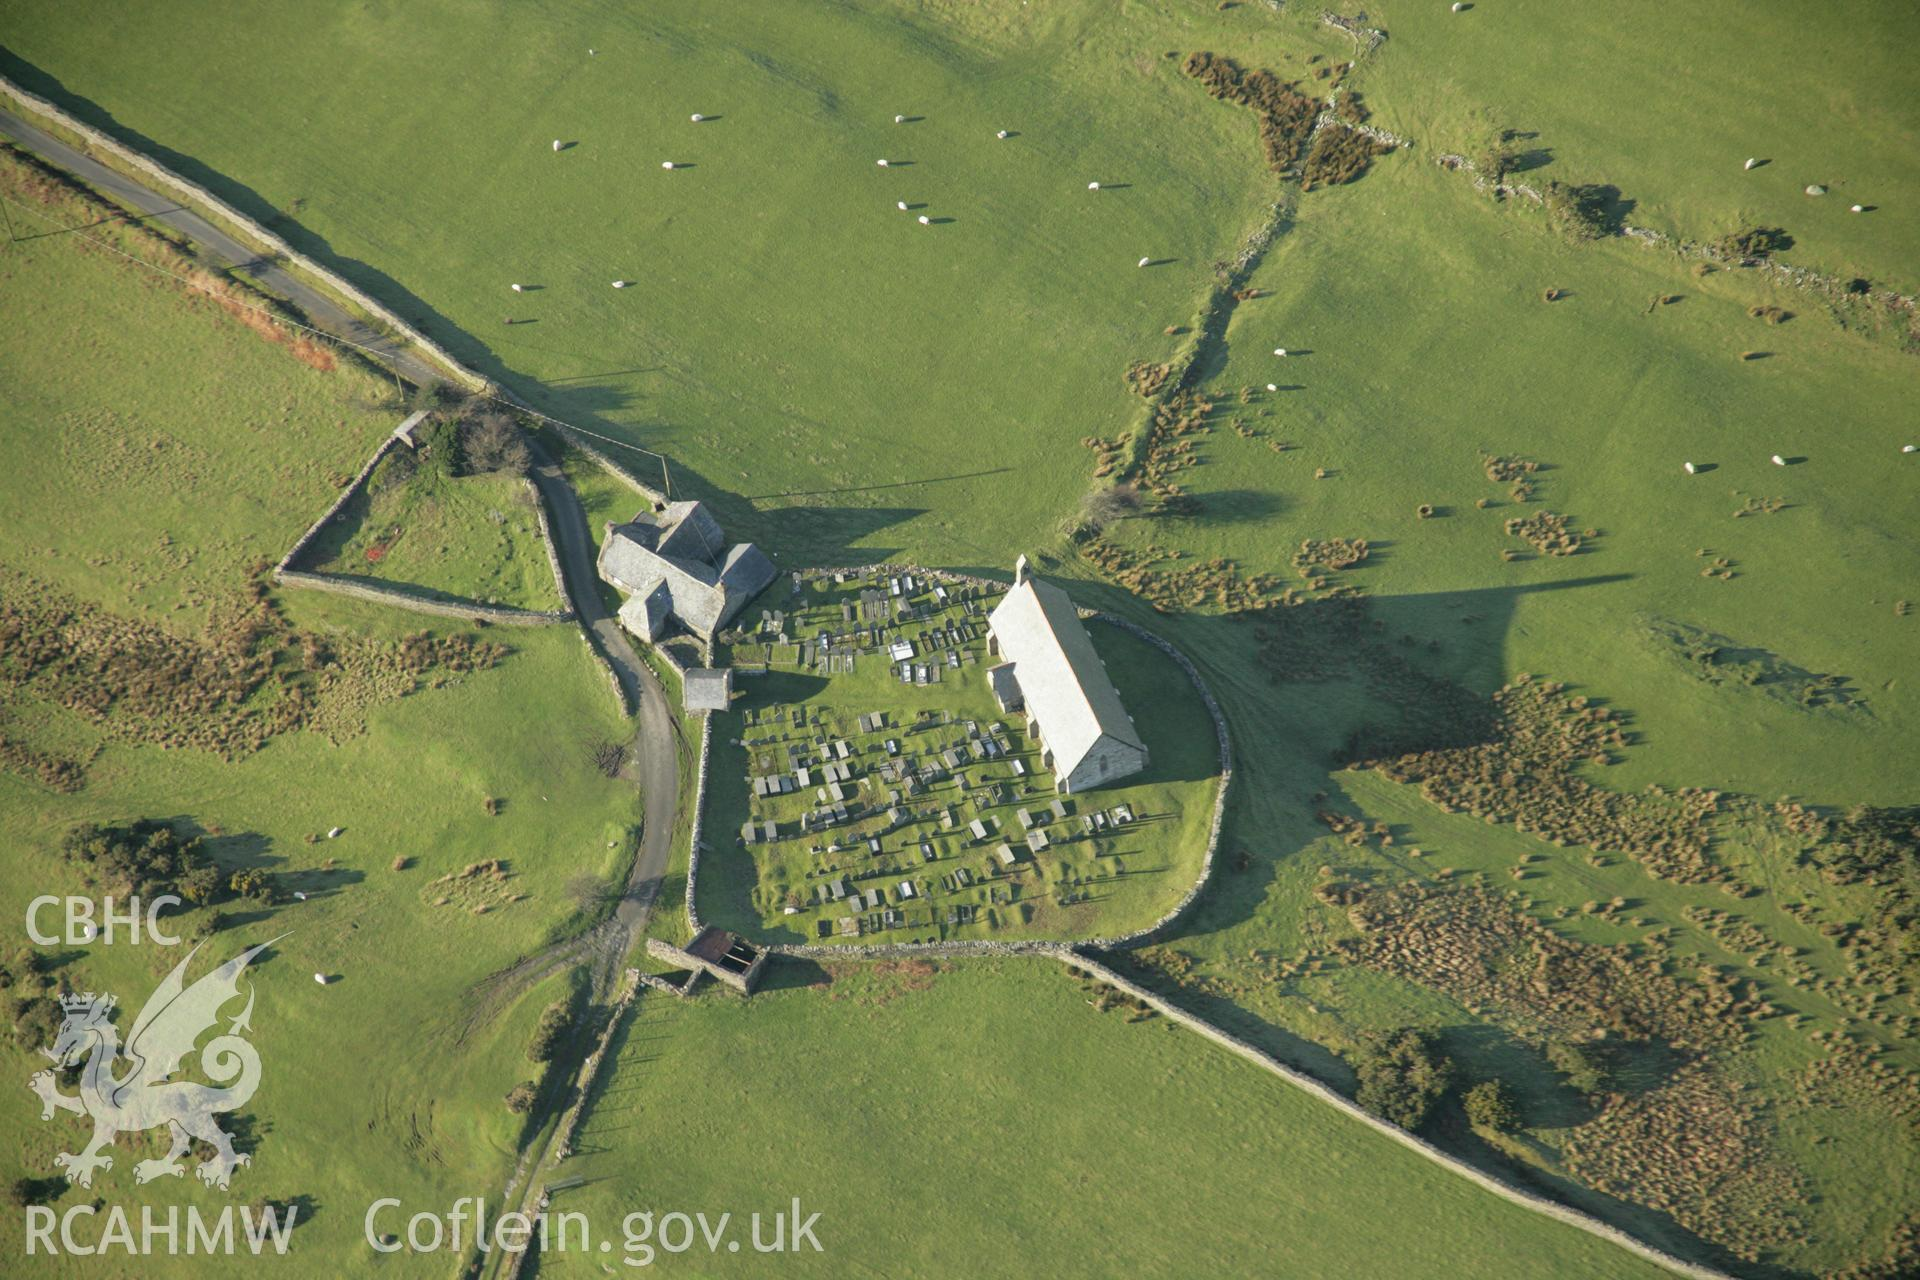 RCAHMW colour oblique aerial photograph of St Tecwyn's, Llandecwyn. Taken on 25 January 2007 by Toby Driver